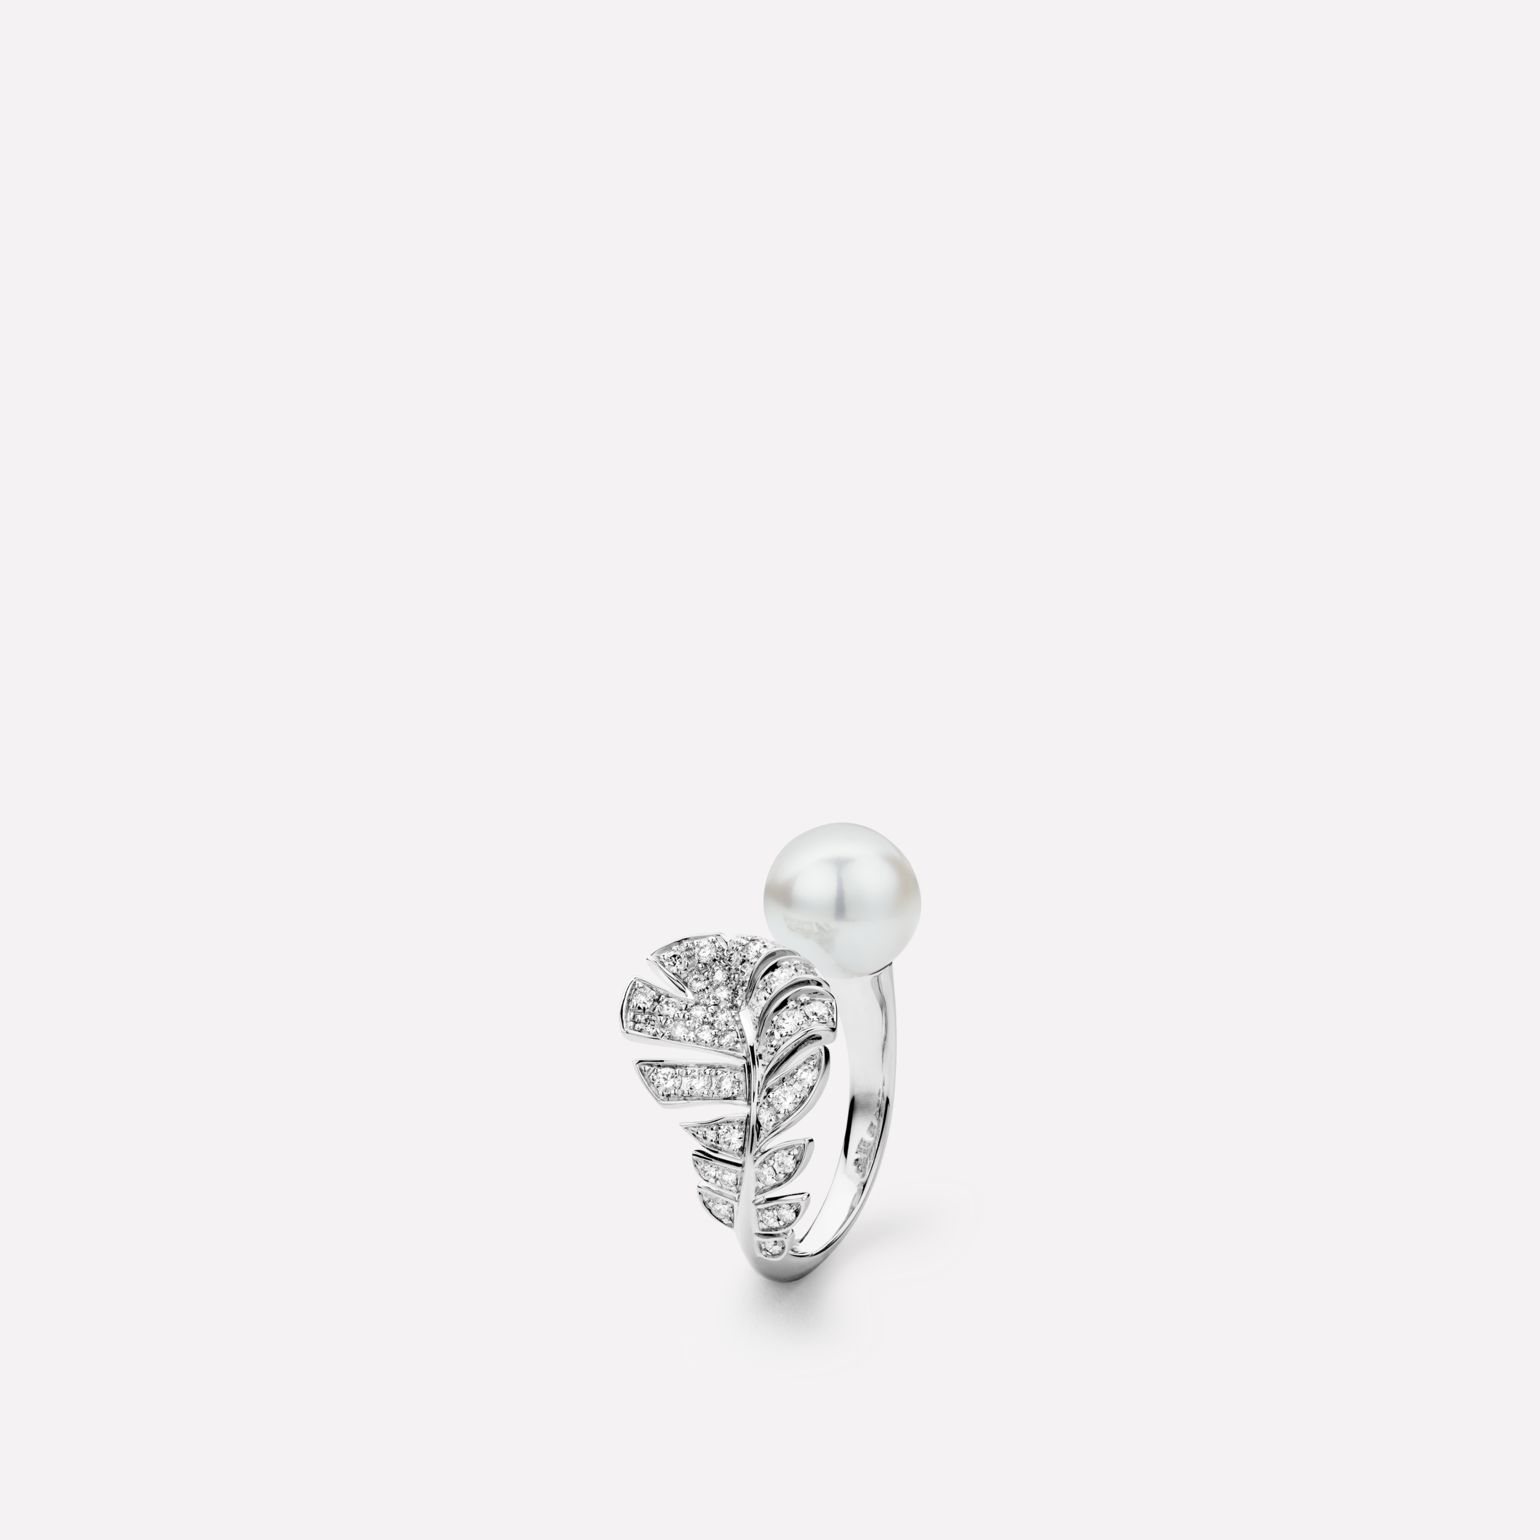 Plume de CHANEL ring Plume ring in 18K white gold, diamonds and cultured pearls